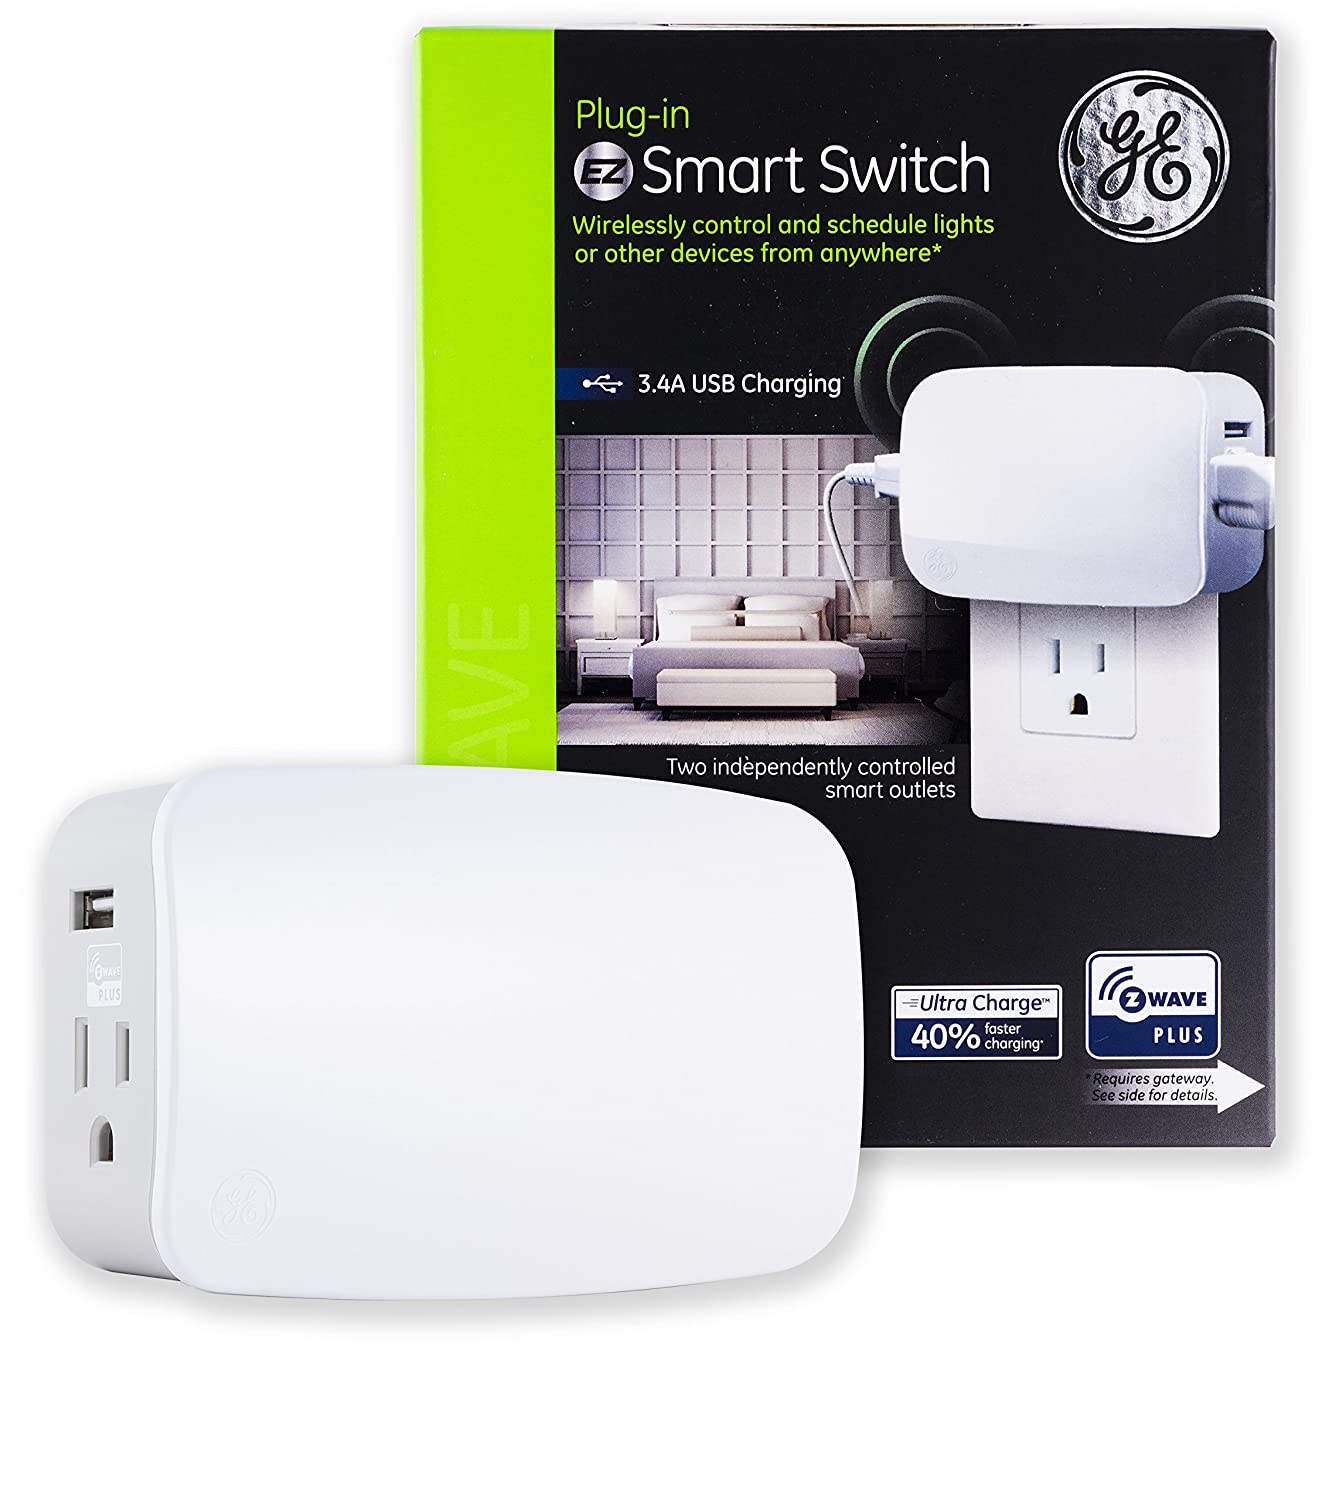 GE Enbrighten Z-Wave Plus Smart Plug with 2 USB Ports (3.4A Shared), 2 Individually Controlled Outlets, On/Off Switch, Zwave Hub Required, Works with SmartThings Wink & Alexa, 28177, White